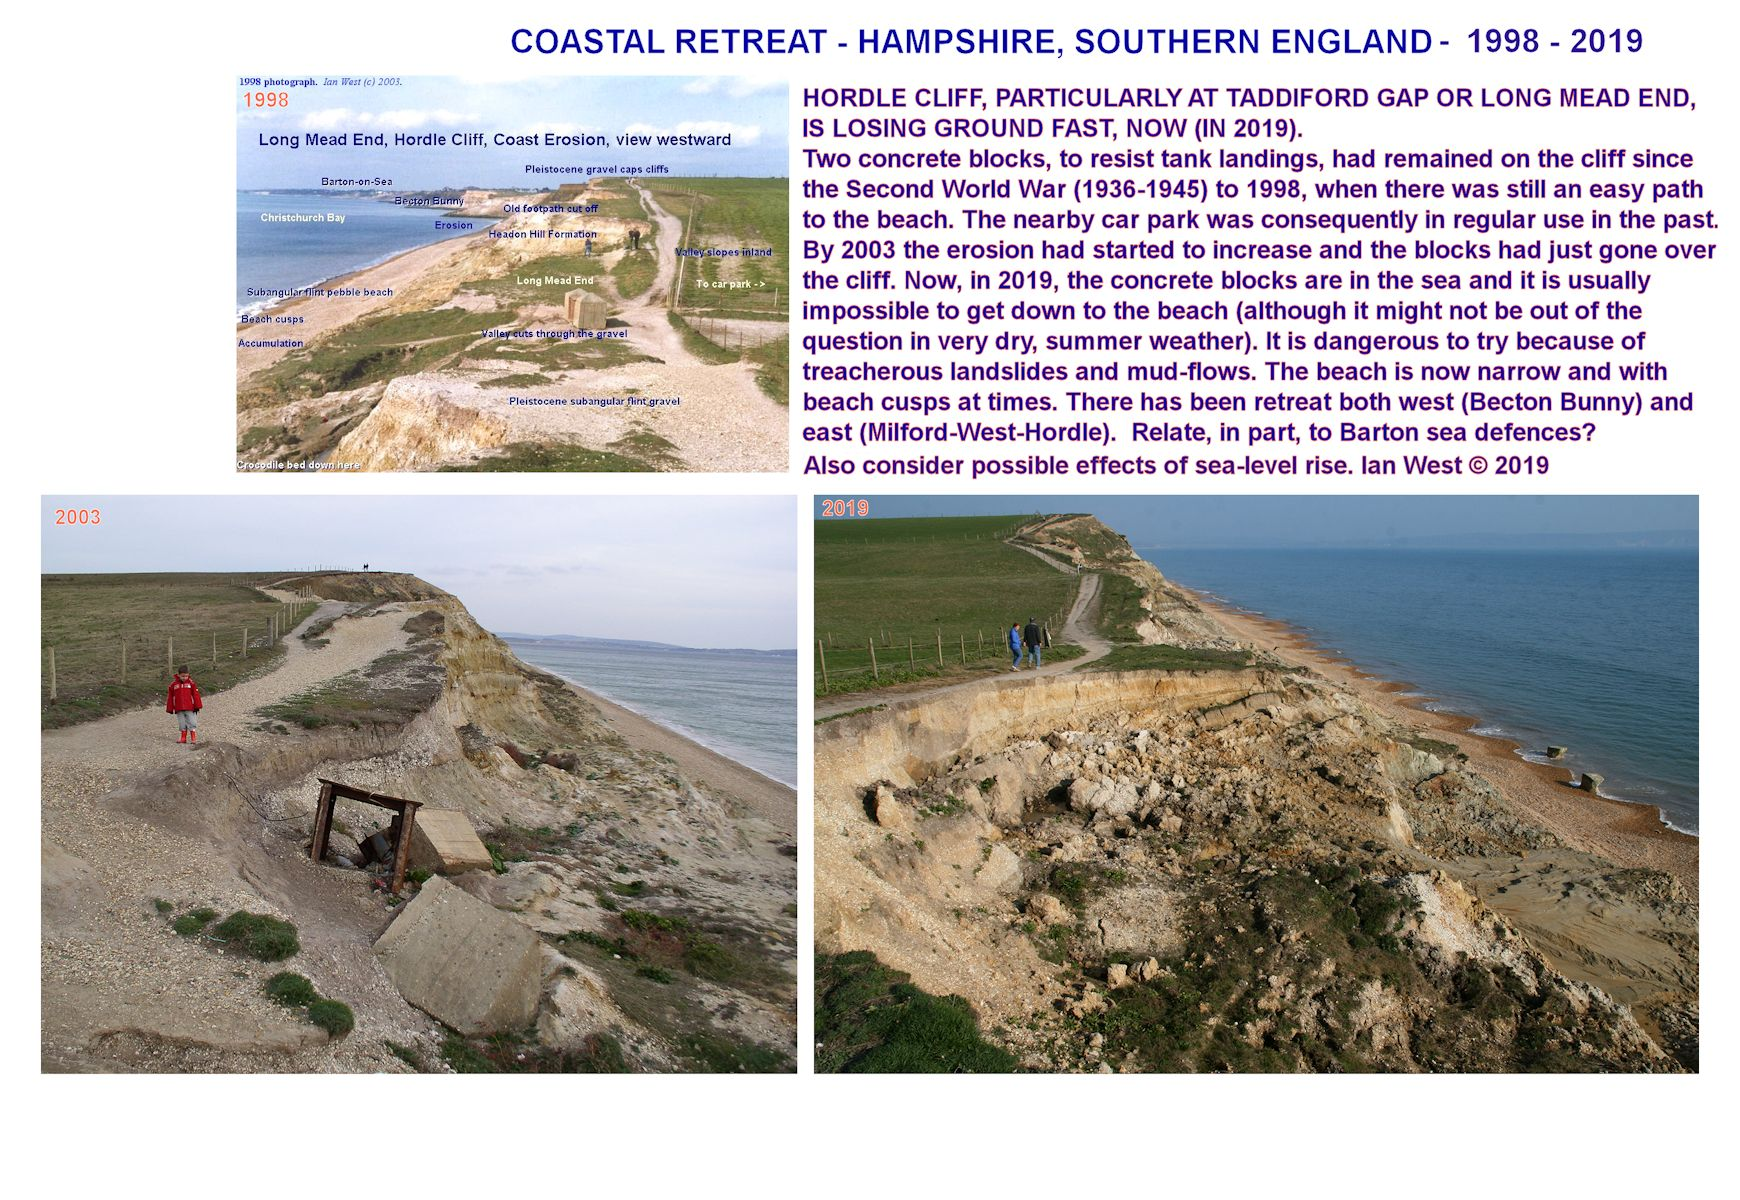 Changes at the Taddiford Gap or Long Mead End, Hordle Cliff, from 1998-2019, comparison